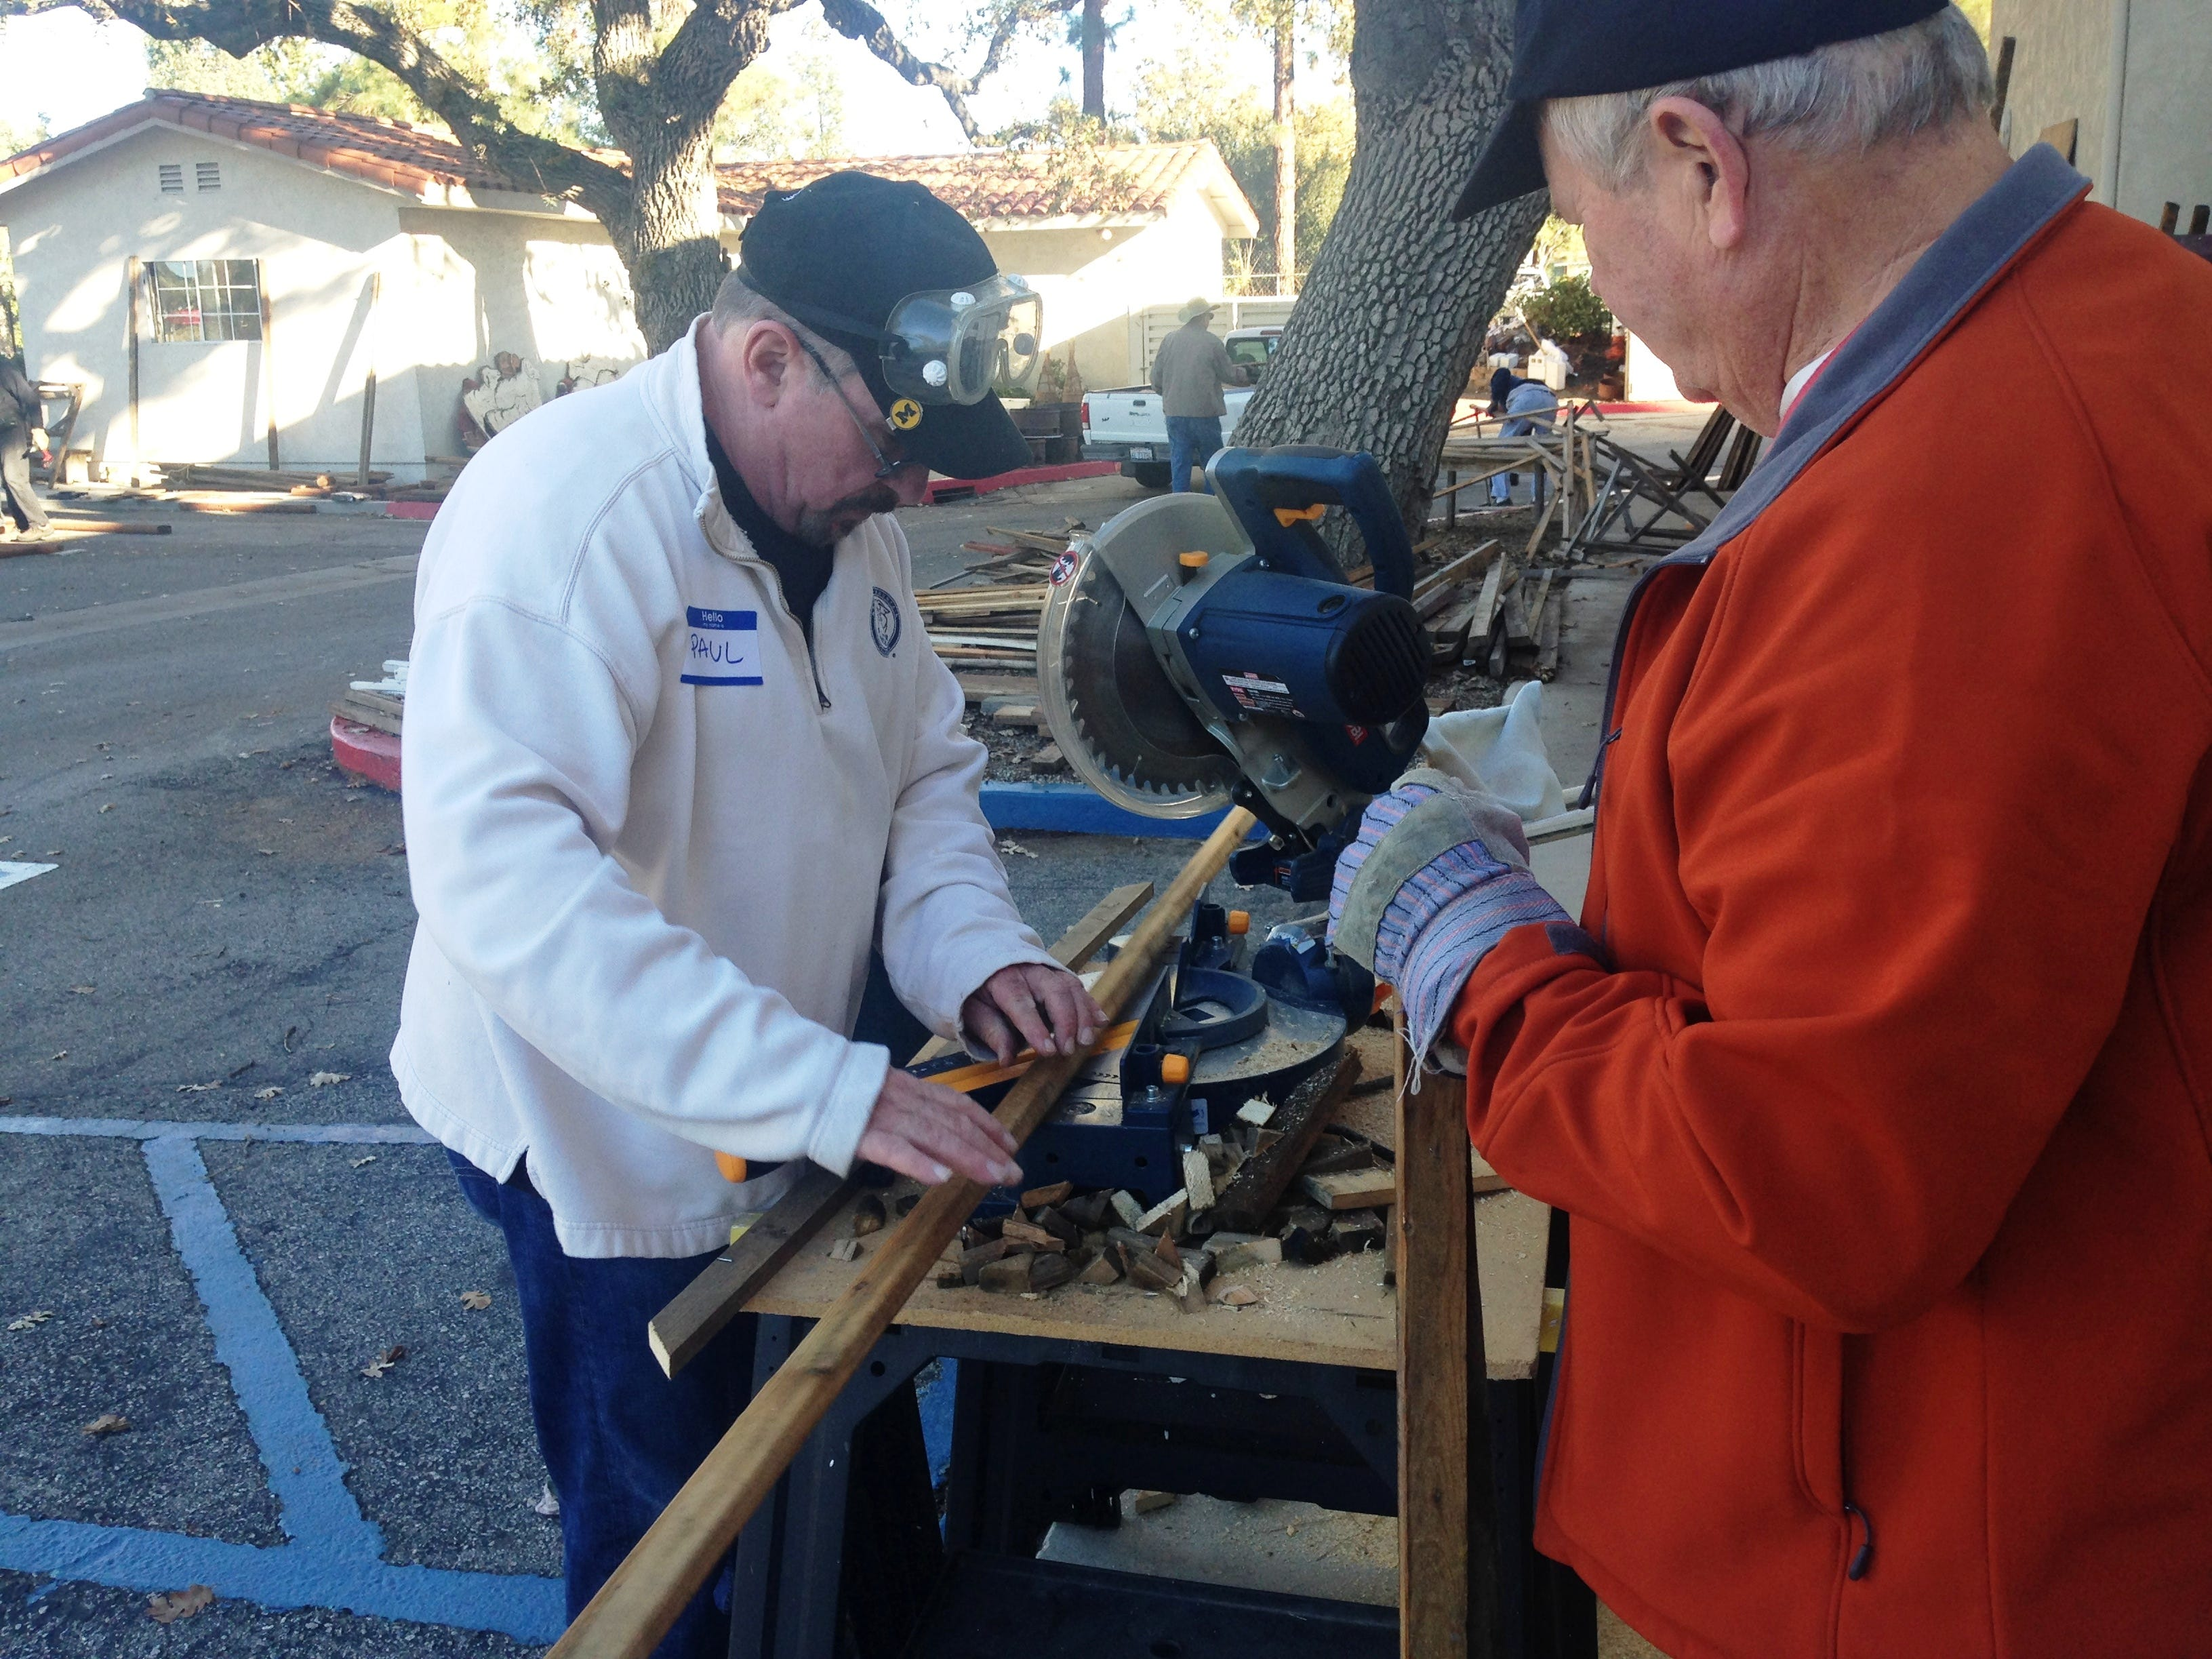 Volunteer Paul Diggs uses a saw to build the sets for the Bethlehem Experience as volunteer Ed Wohlenberg looks on.